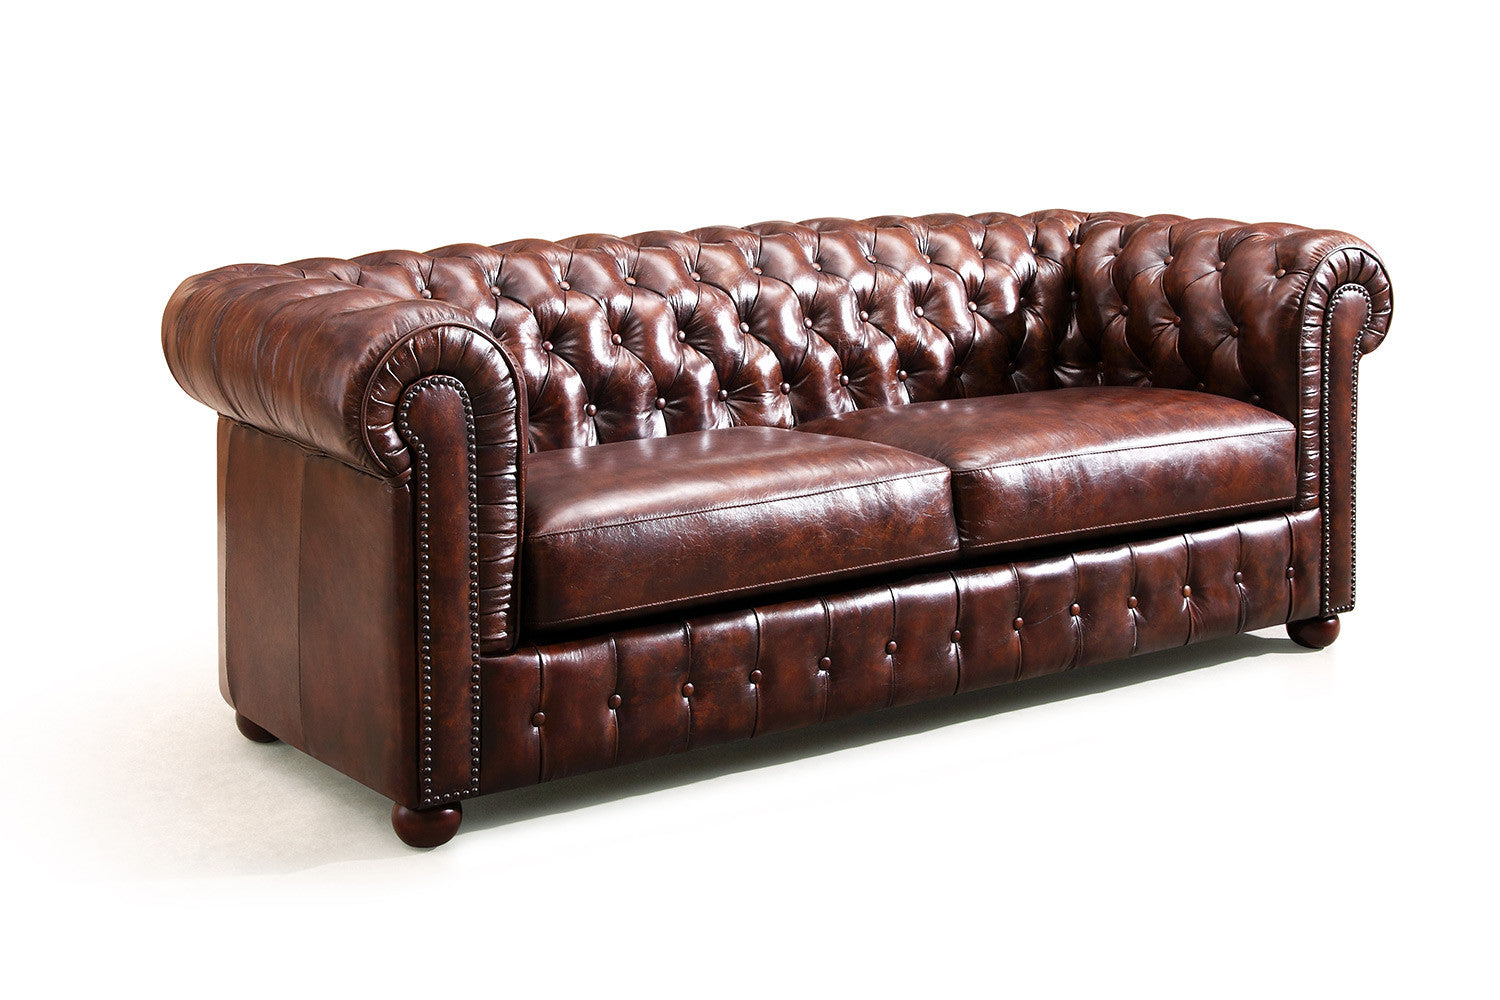 Canap chesterfield original rose moore - Canape chesterfield rouge cuir ...